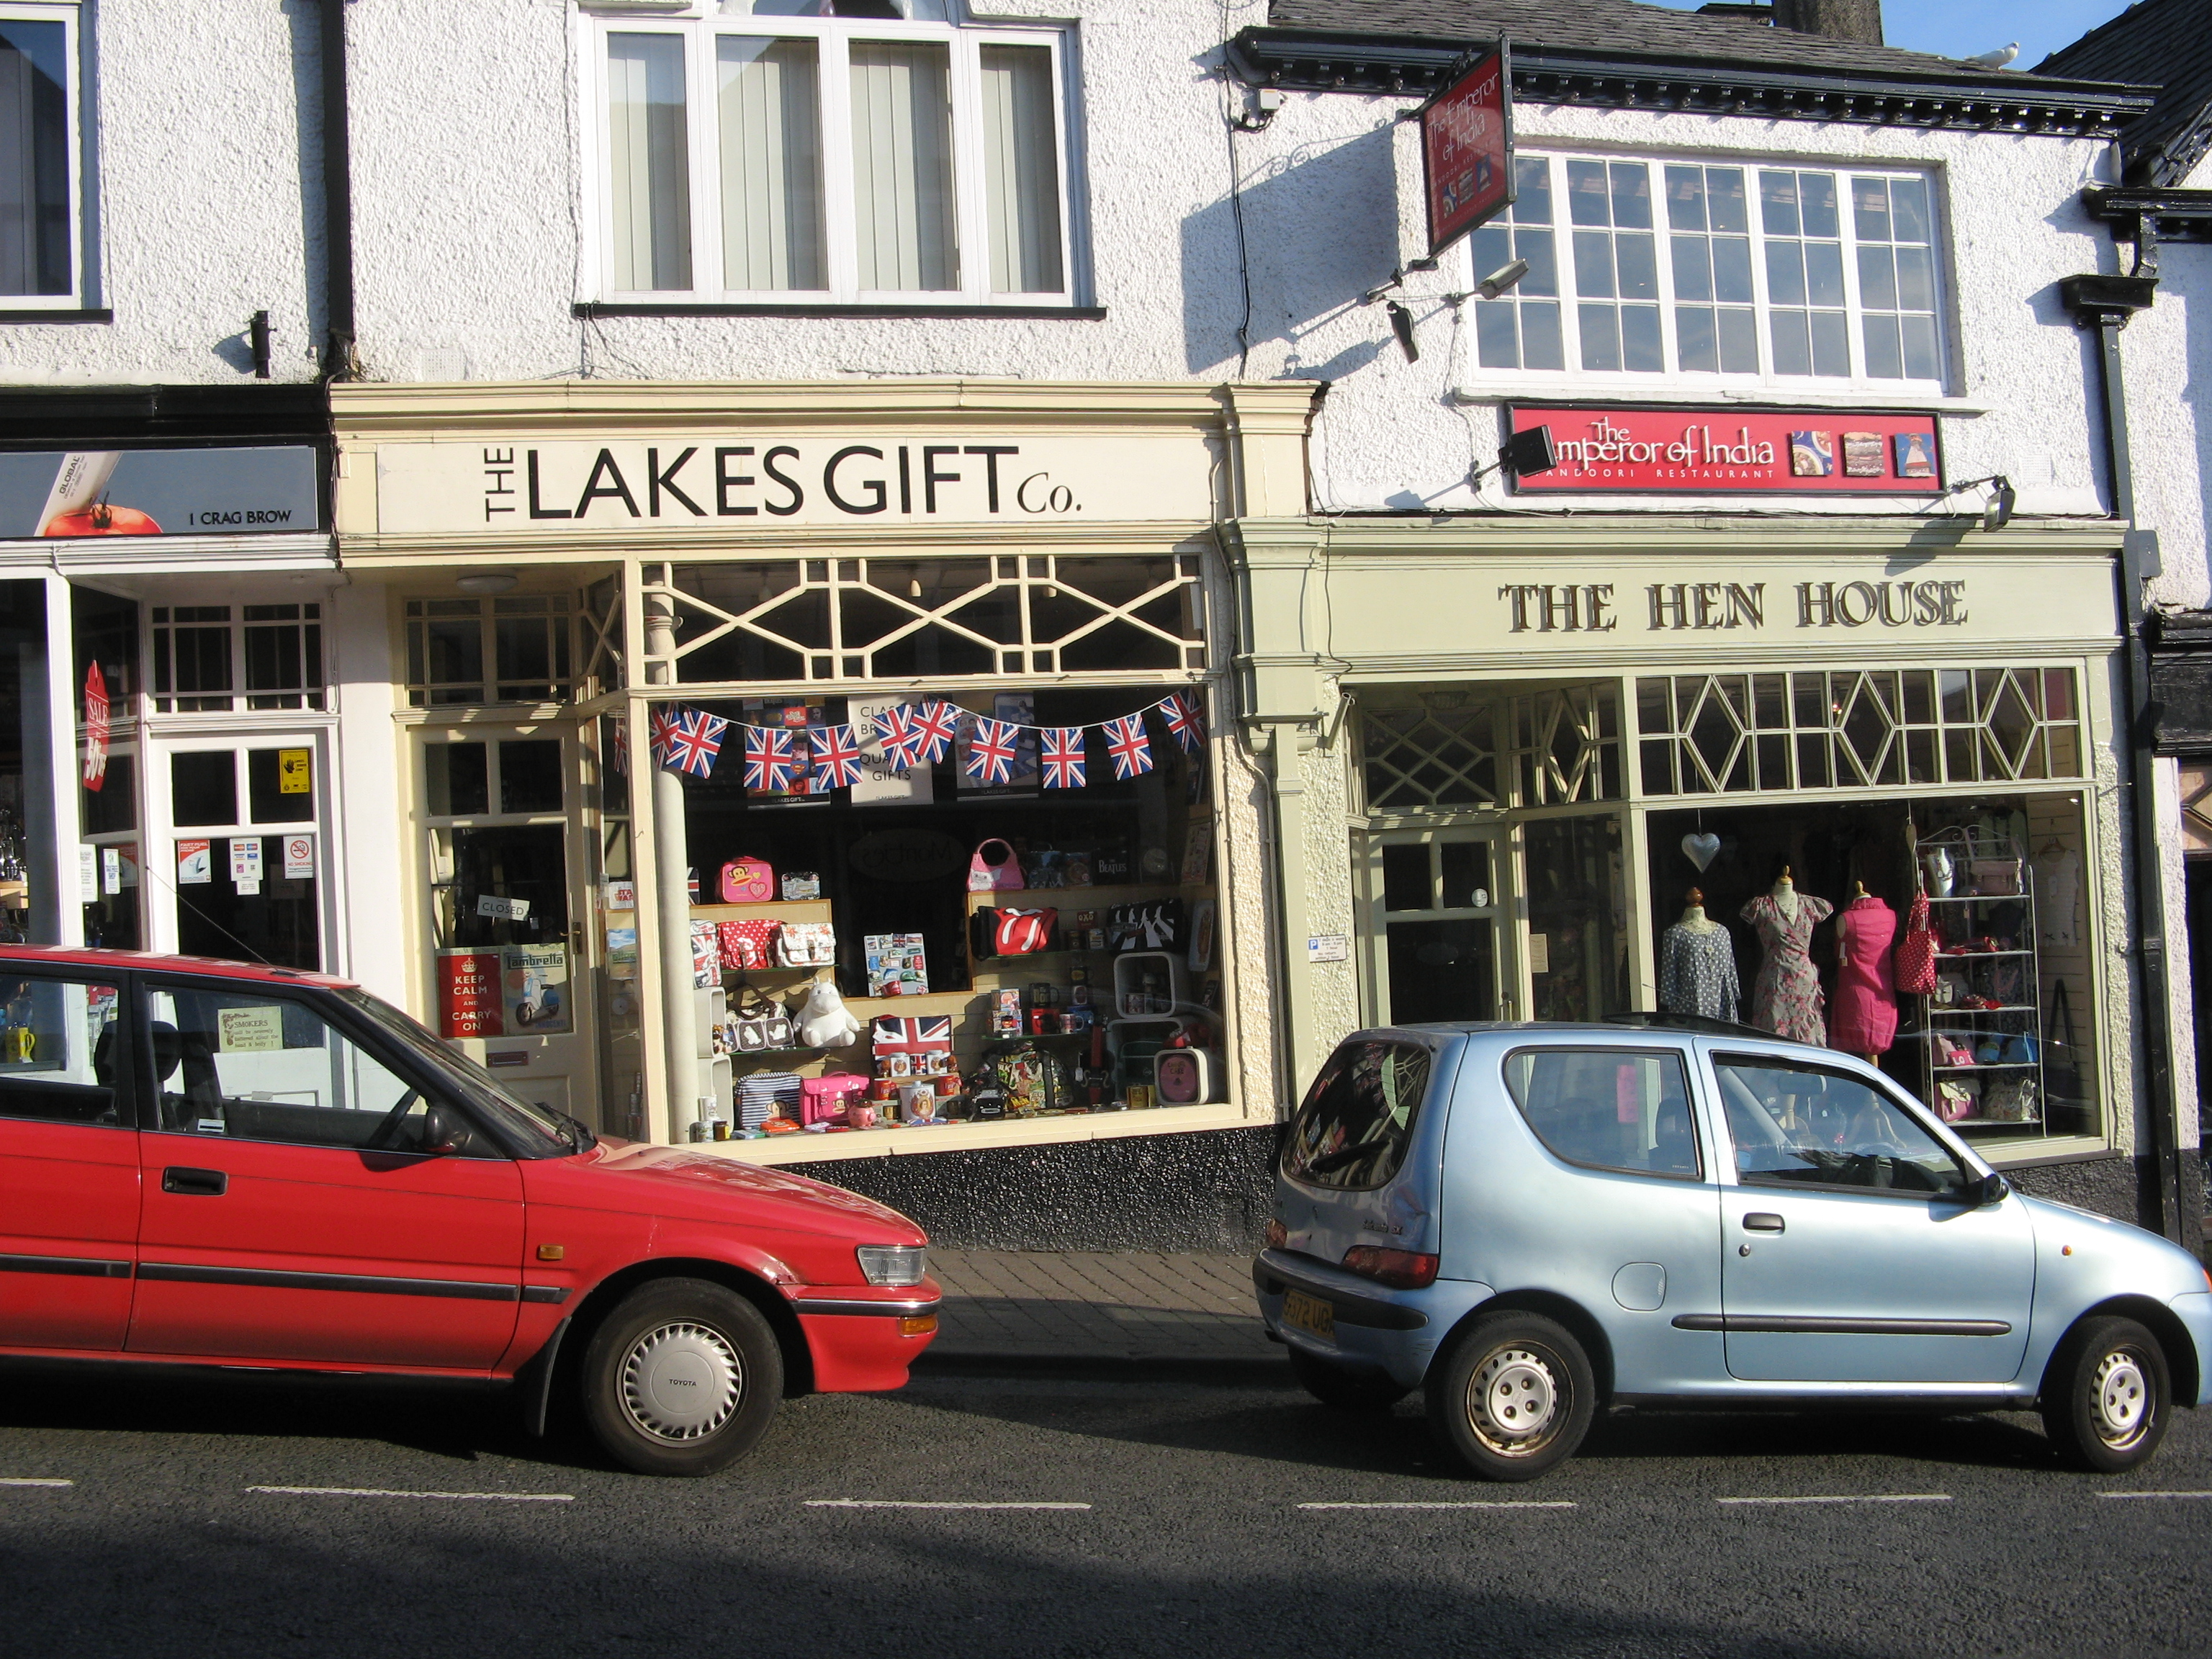 The high street in Bowness-on-Windermere, variously known as Crag Brow, Lake Road etc.